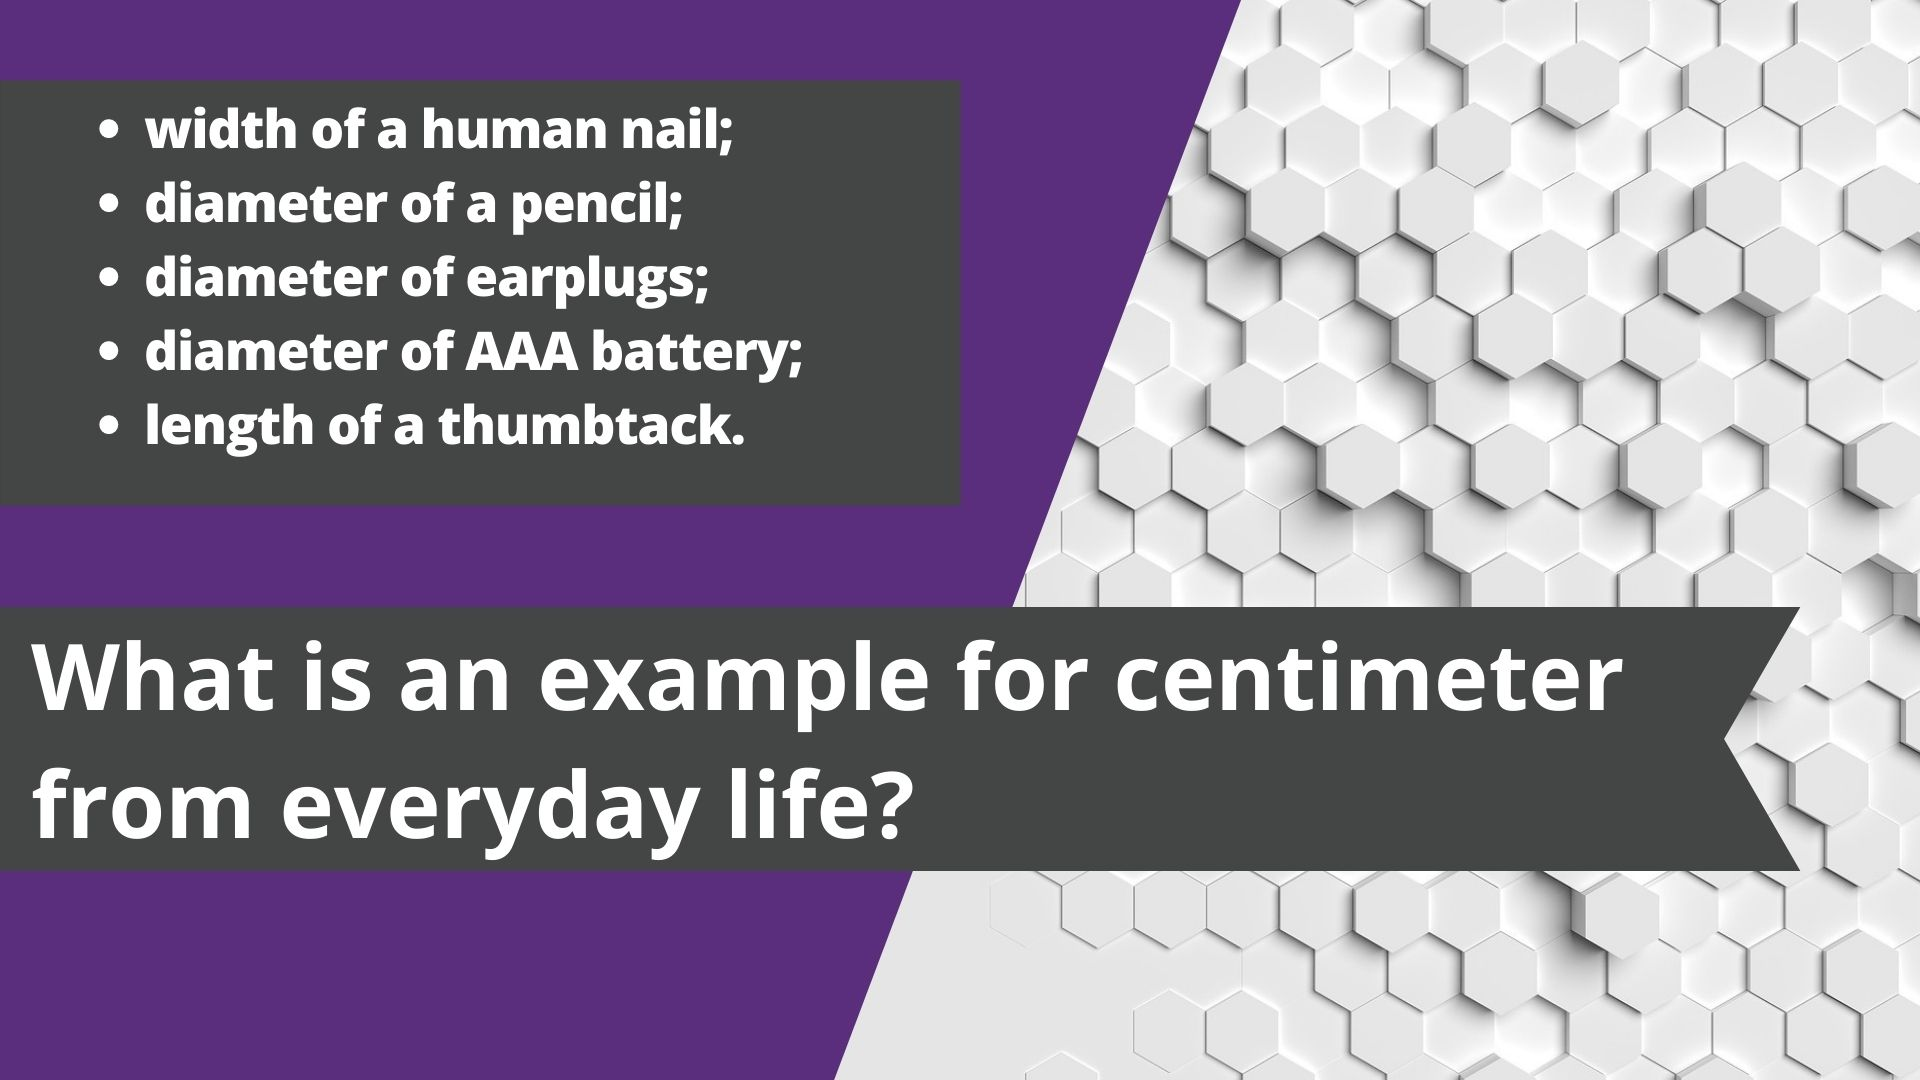 What is an example for centimeter from everyday life